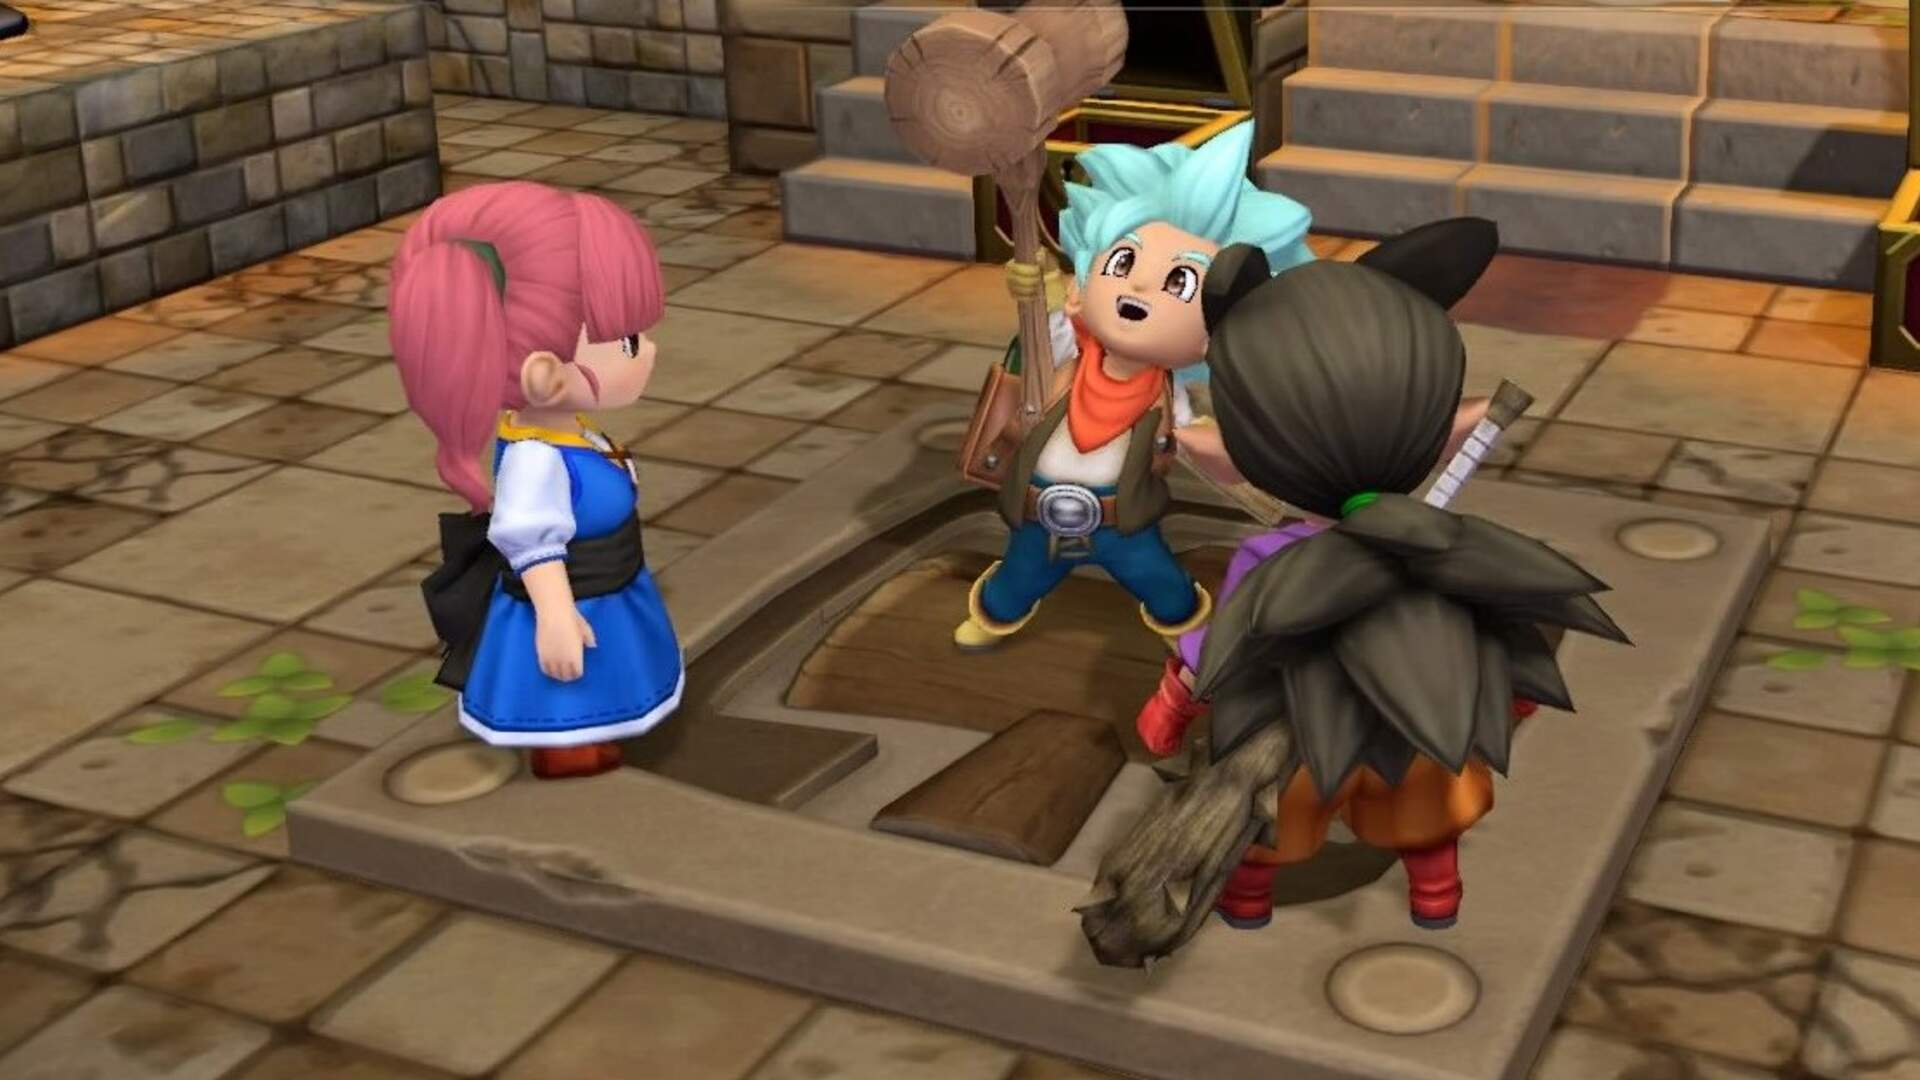 Dragon Quest Builders 2 Grass Seeds - Where to Find Grass Seeds in Dragon Quest Builders 2